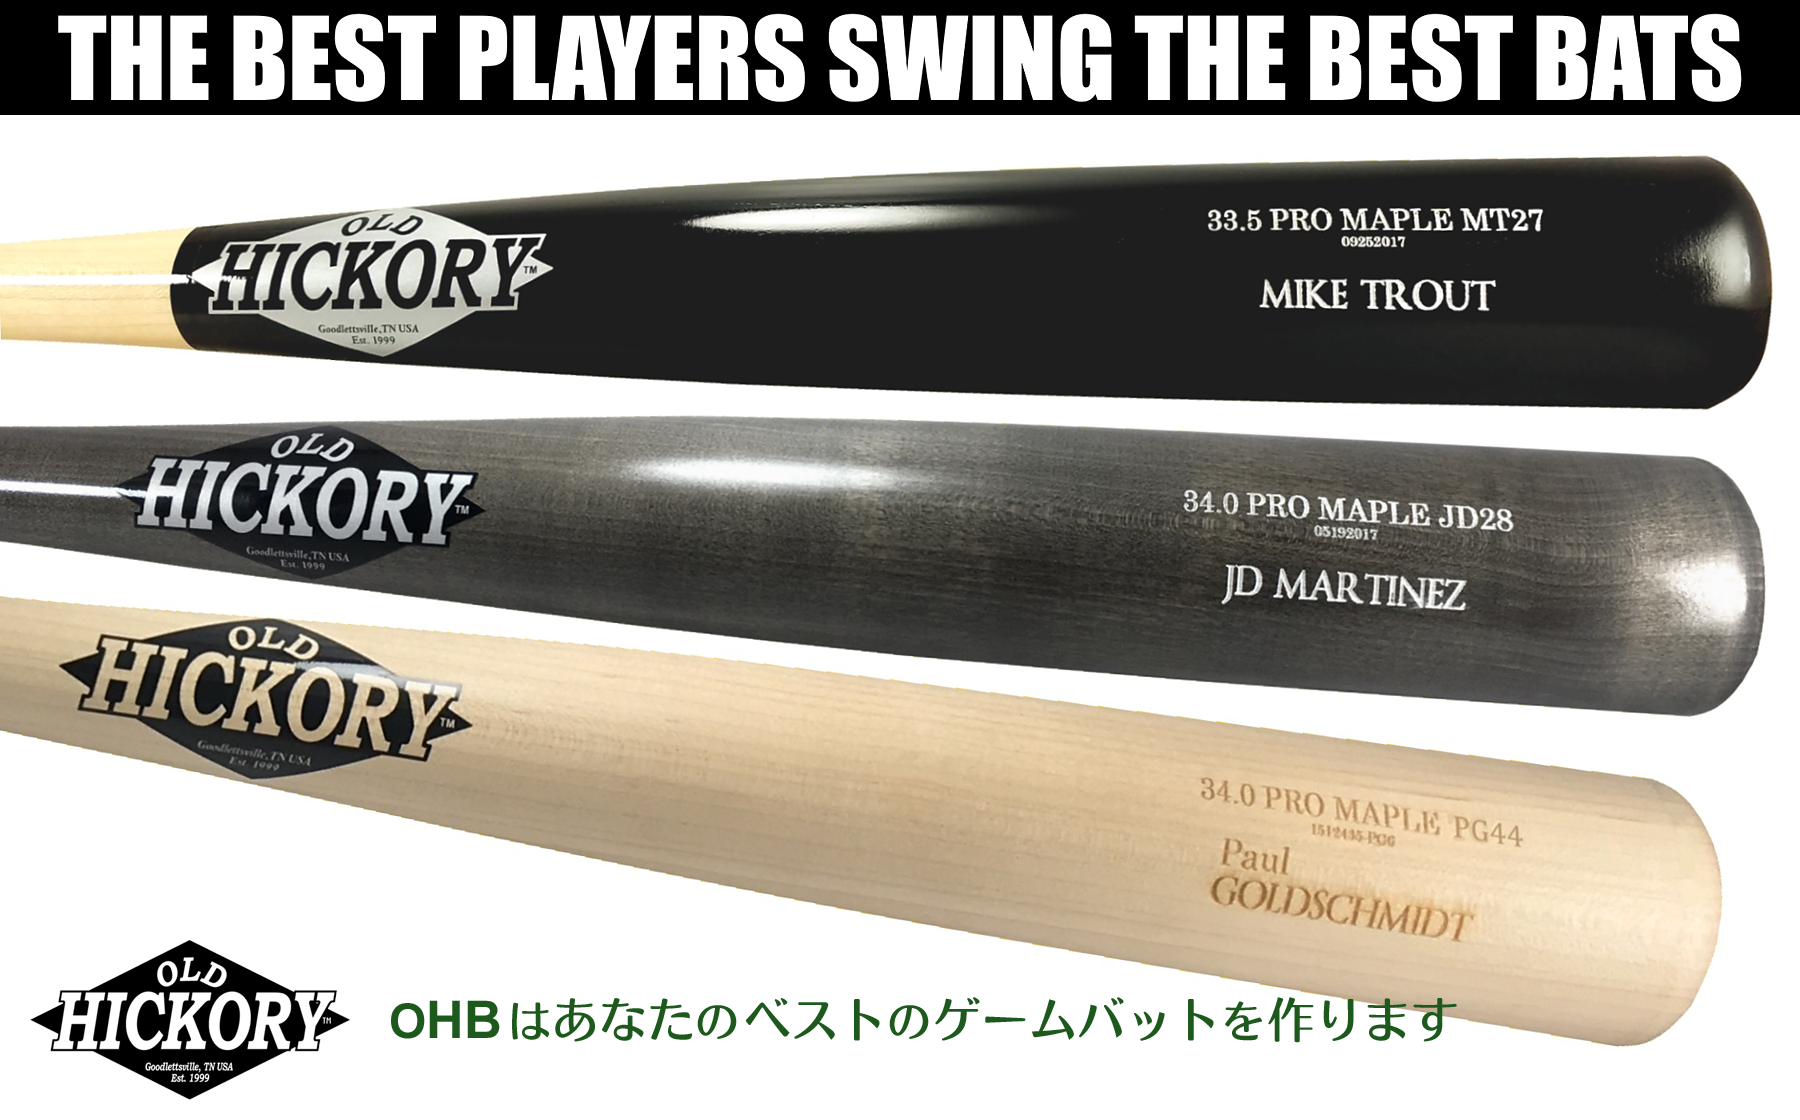 THE TOP PLAYERS SWING THE BEST BATS